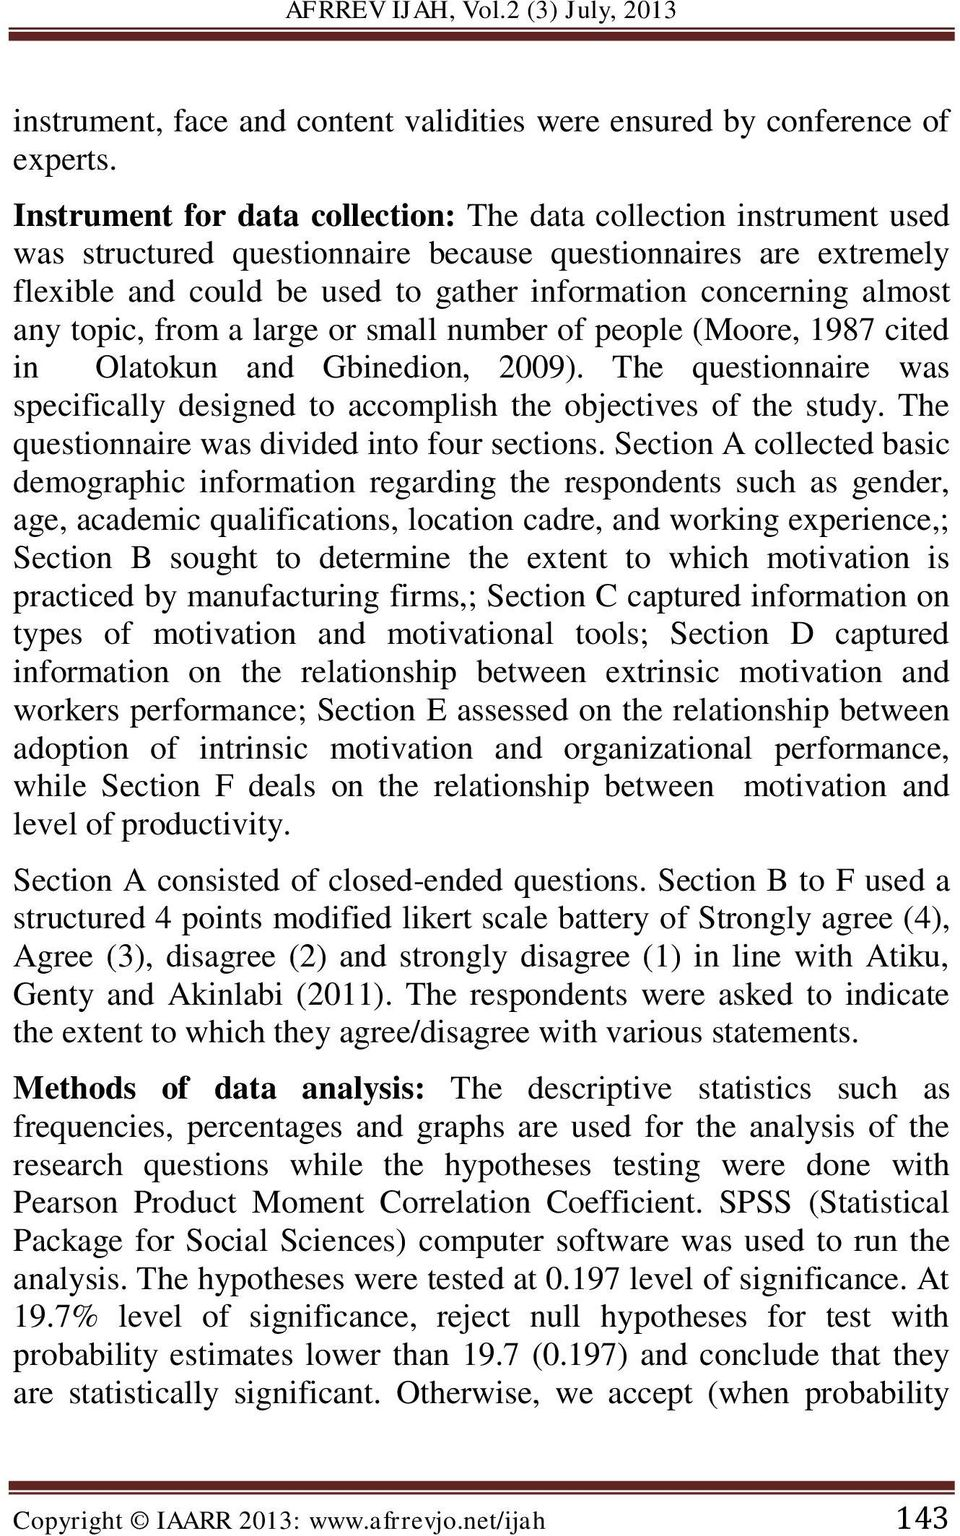 almost any topic, from a large or small number of people (Moore, 1987 cited in Olatokun and Gbinedion, 2009). The questionnaire was specifically designed to accomplish the objectives of the study.